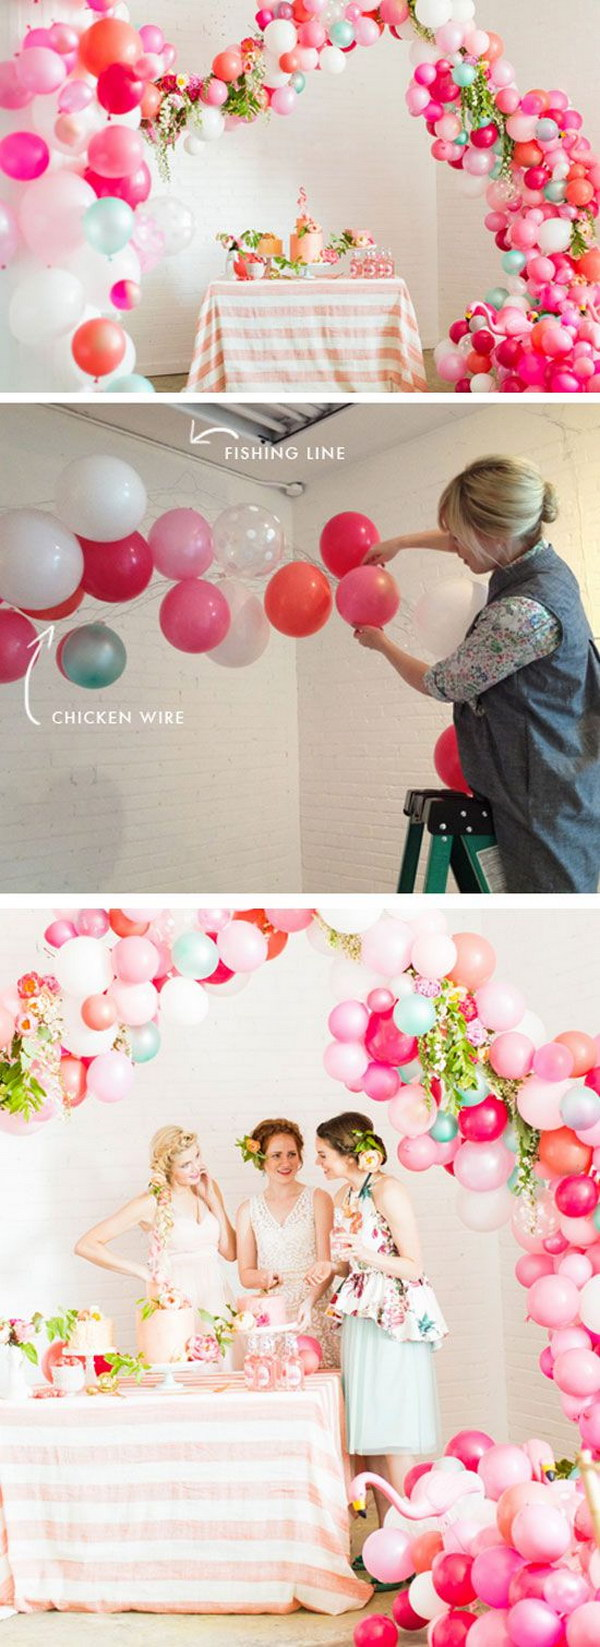 Whimsical Balloon Arch with Tutorials.